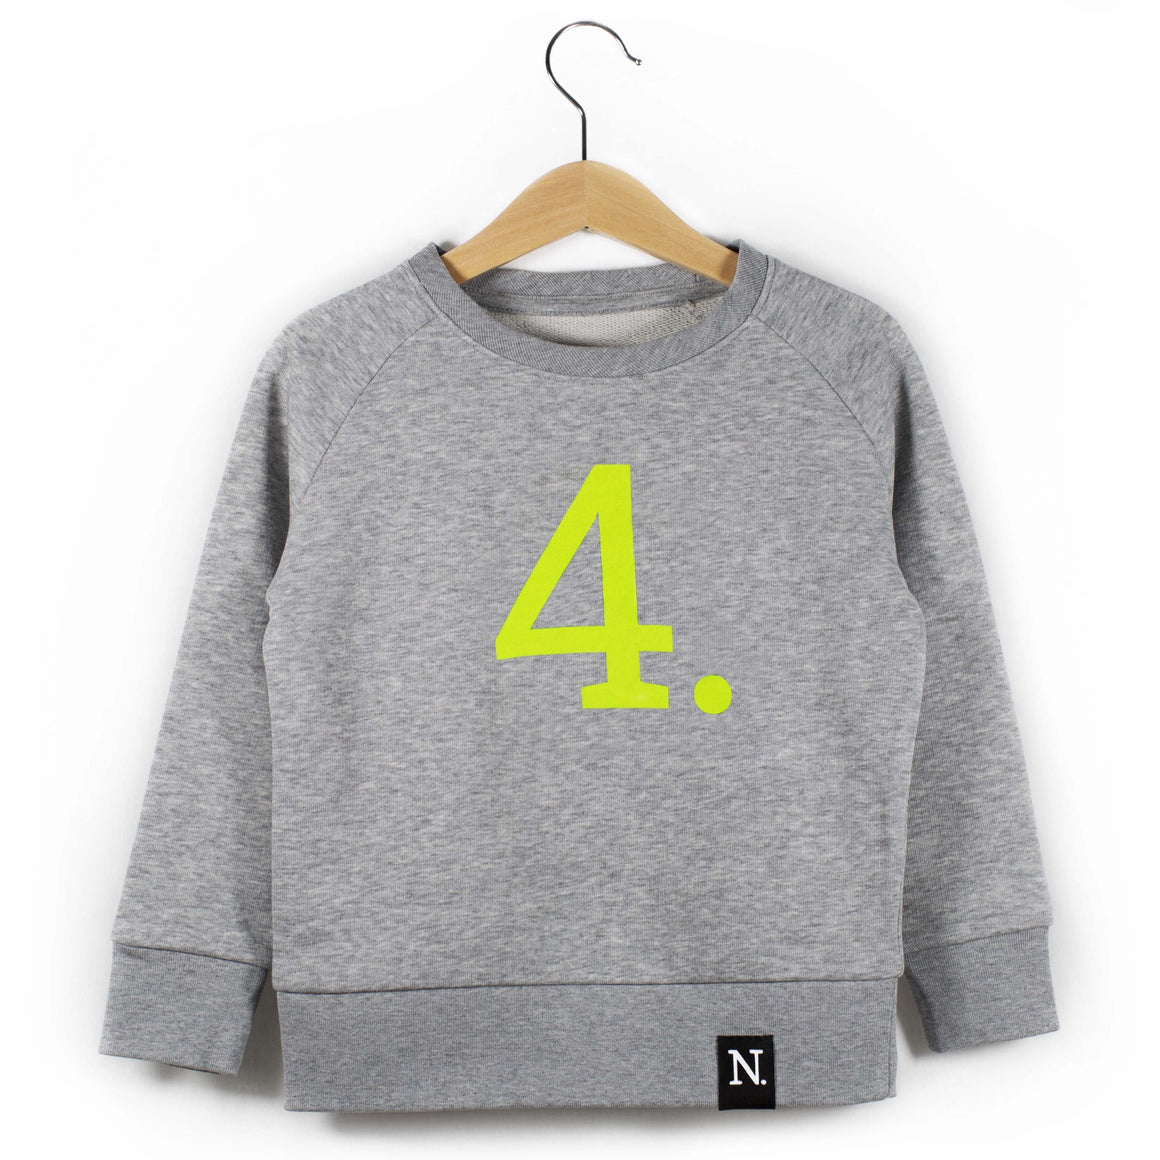 The Number 4 grey sweatshirt front